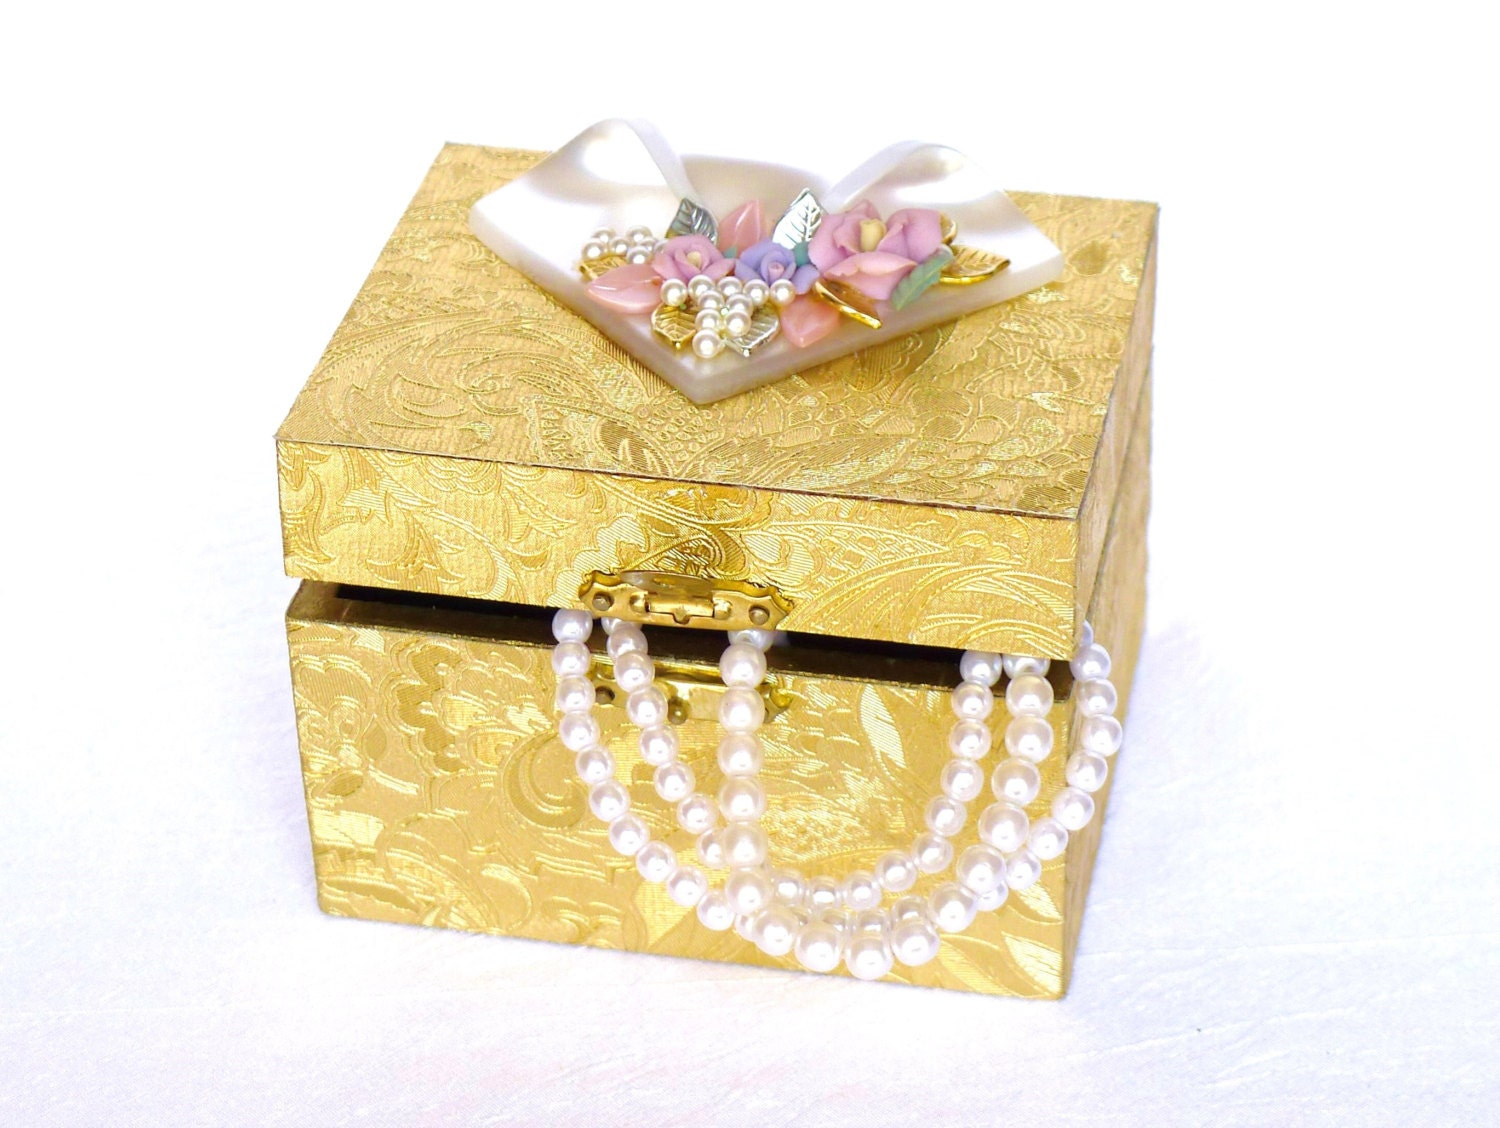 Gold Wedding Gift Box : Gift Box with Flower Top Gold Wedding Jewelry Box gold by LonasART